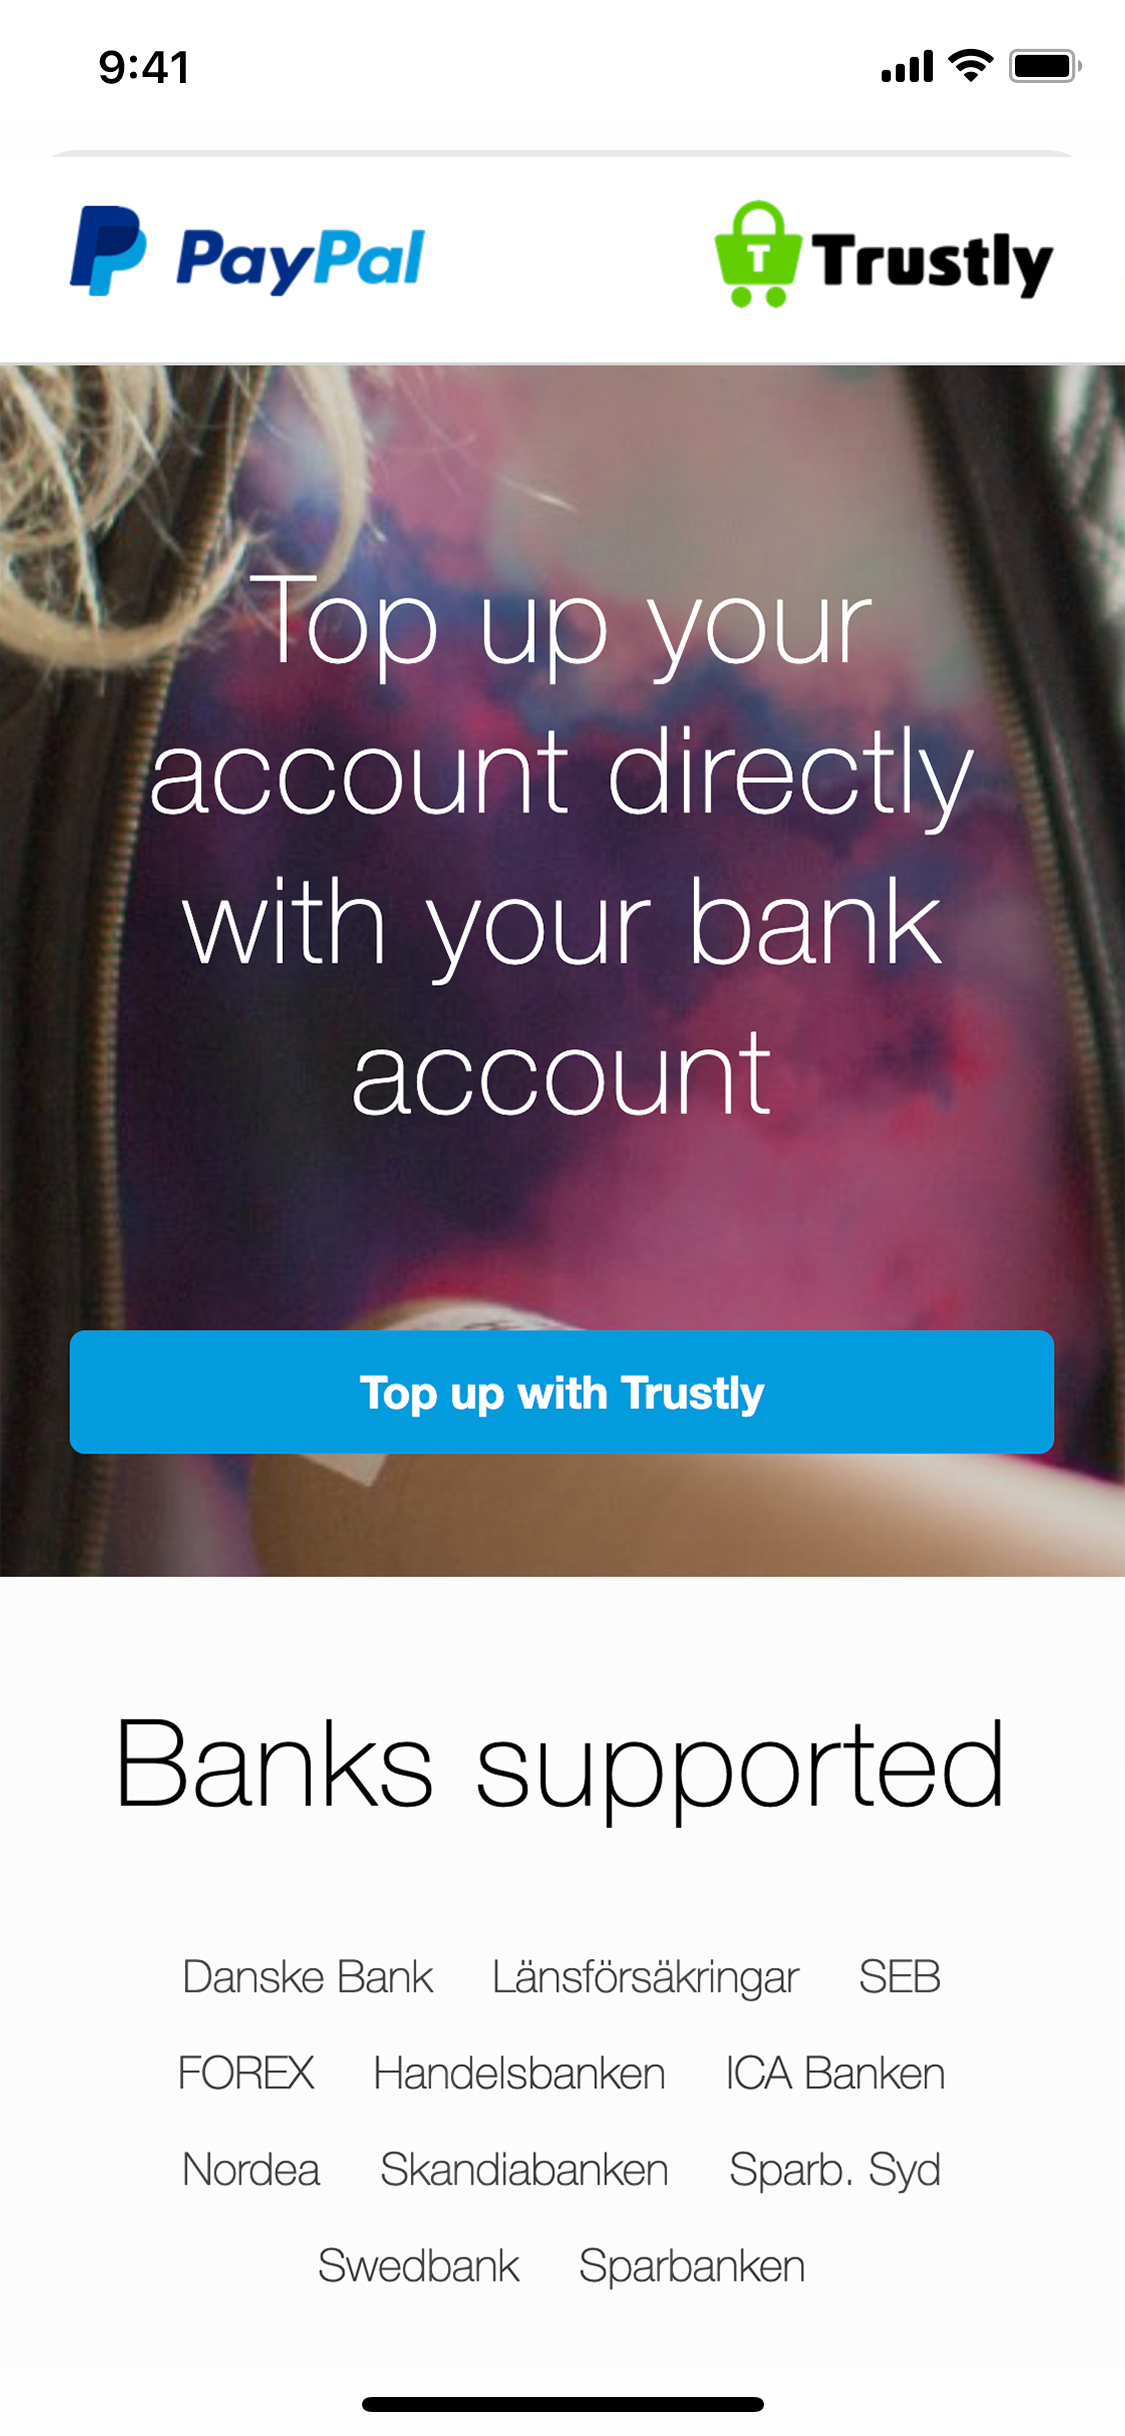 Trustly Finserv - Money top up directly from a bank account to Paypal using Trustly on mobile device